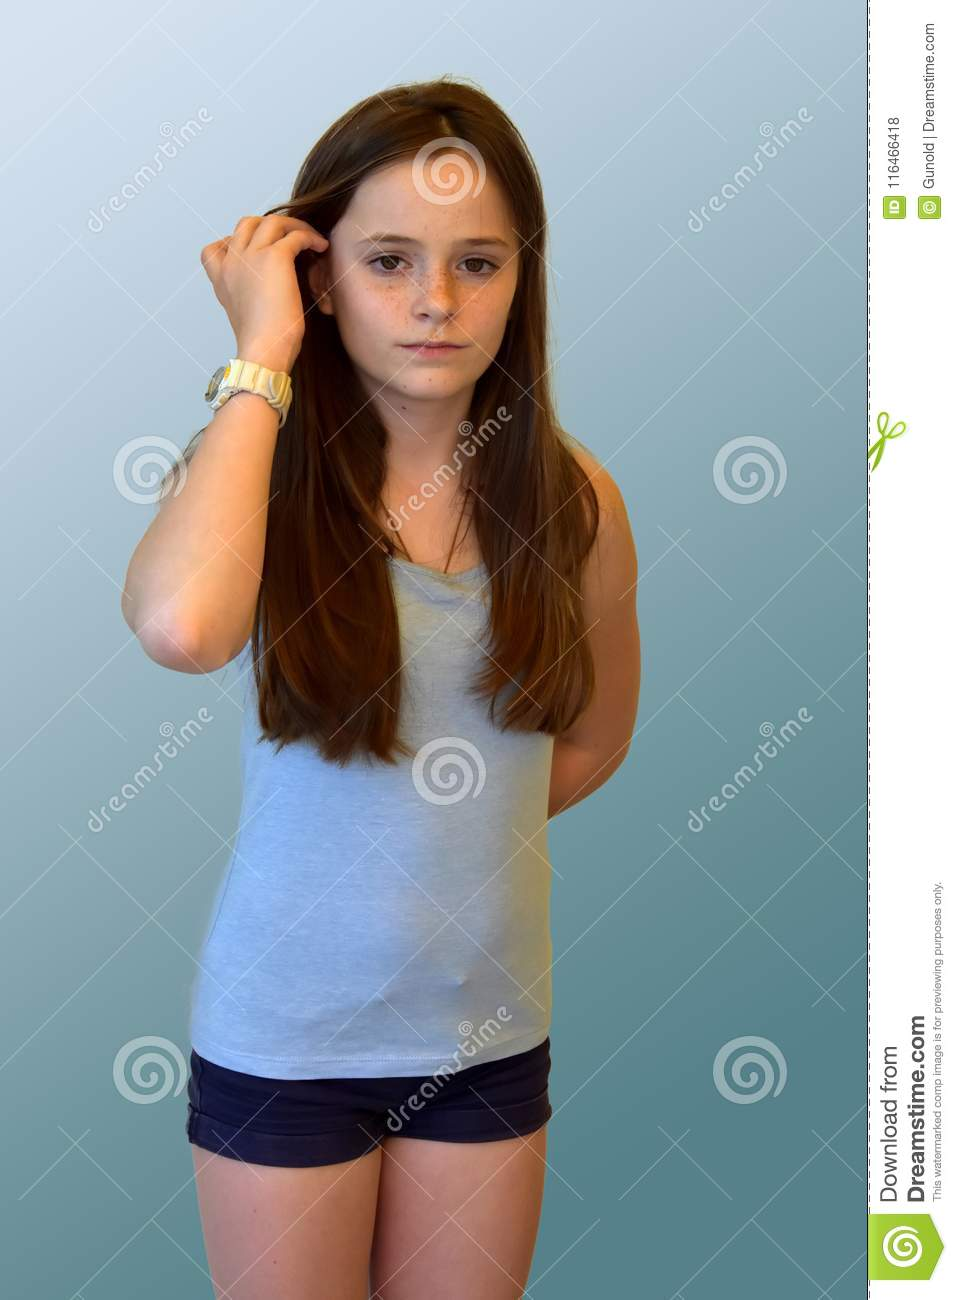 Teenage girl with long brown hair and freckles